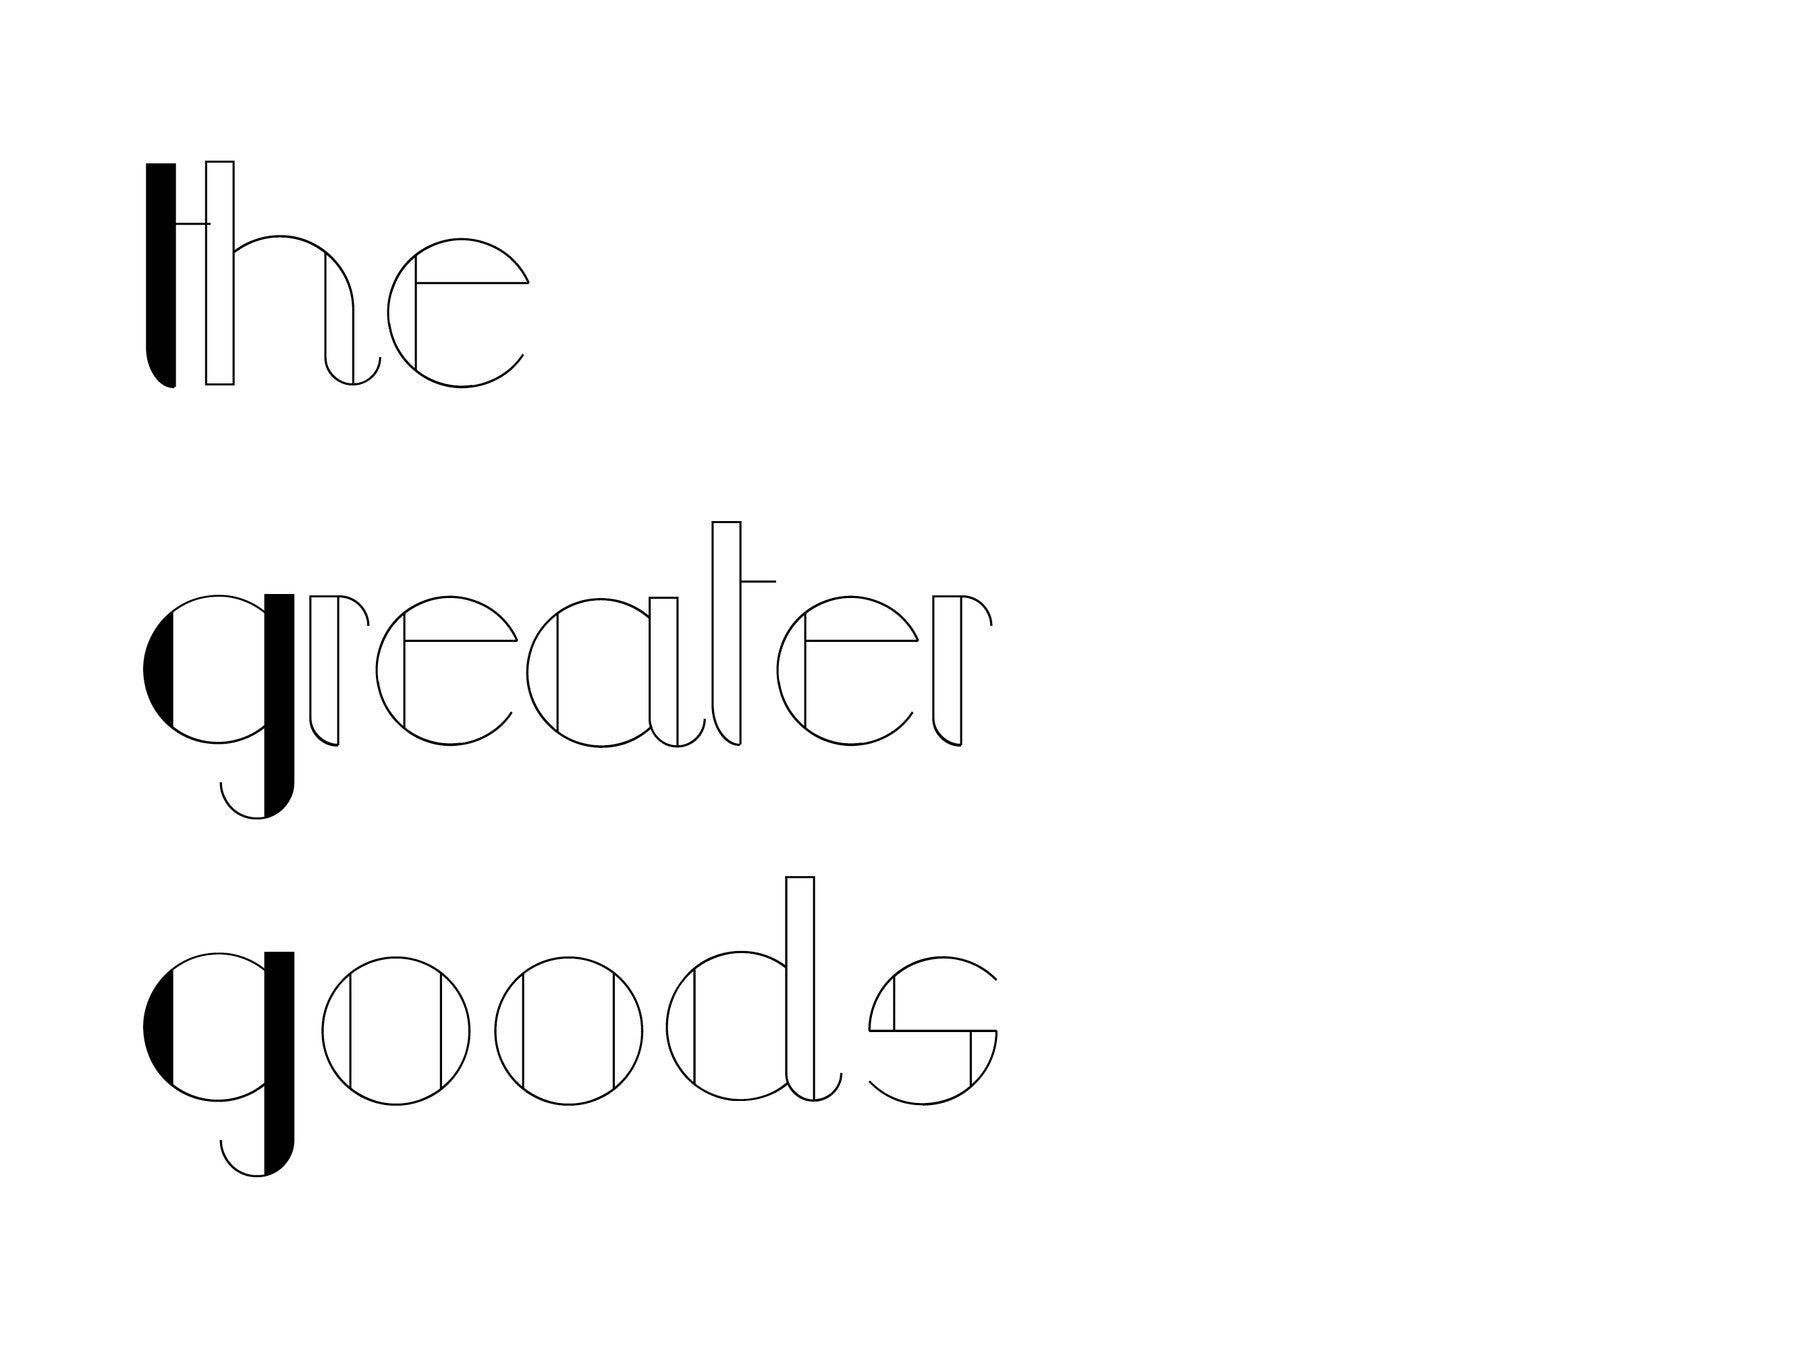 The Greater Goods